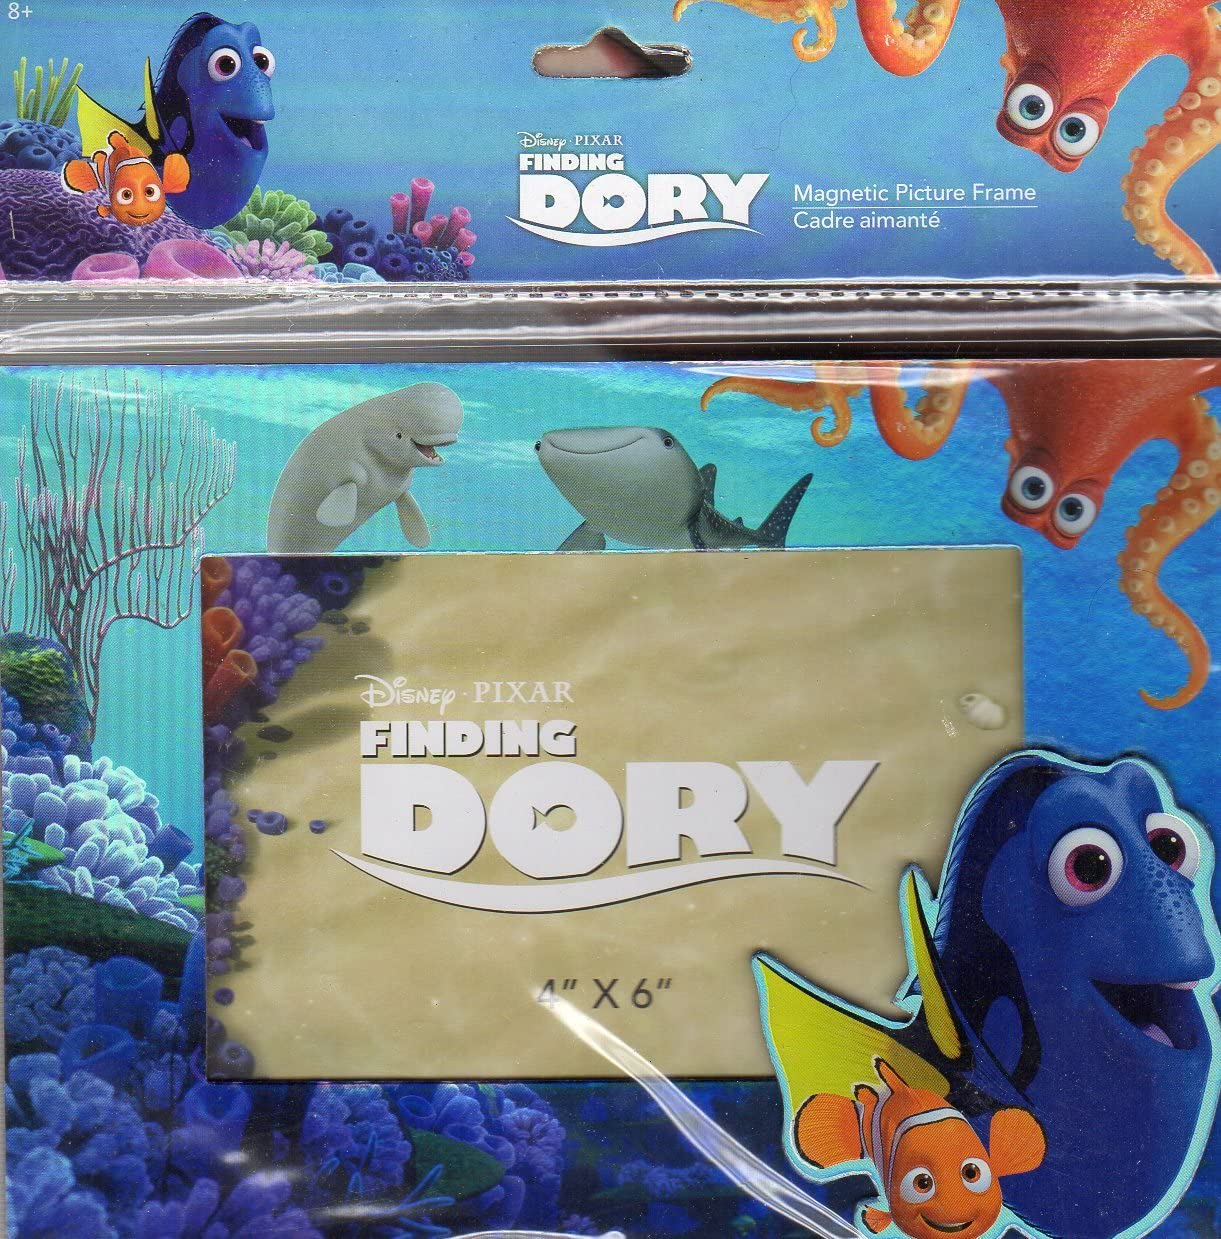 DISNEY Finding Dory Magnetic Picture Frame Or Table Top 4 X 6 New In Package